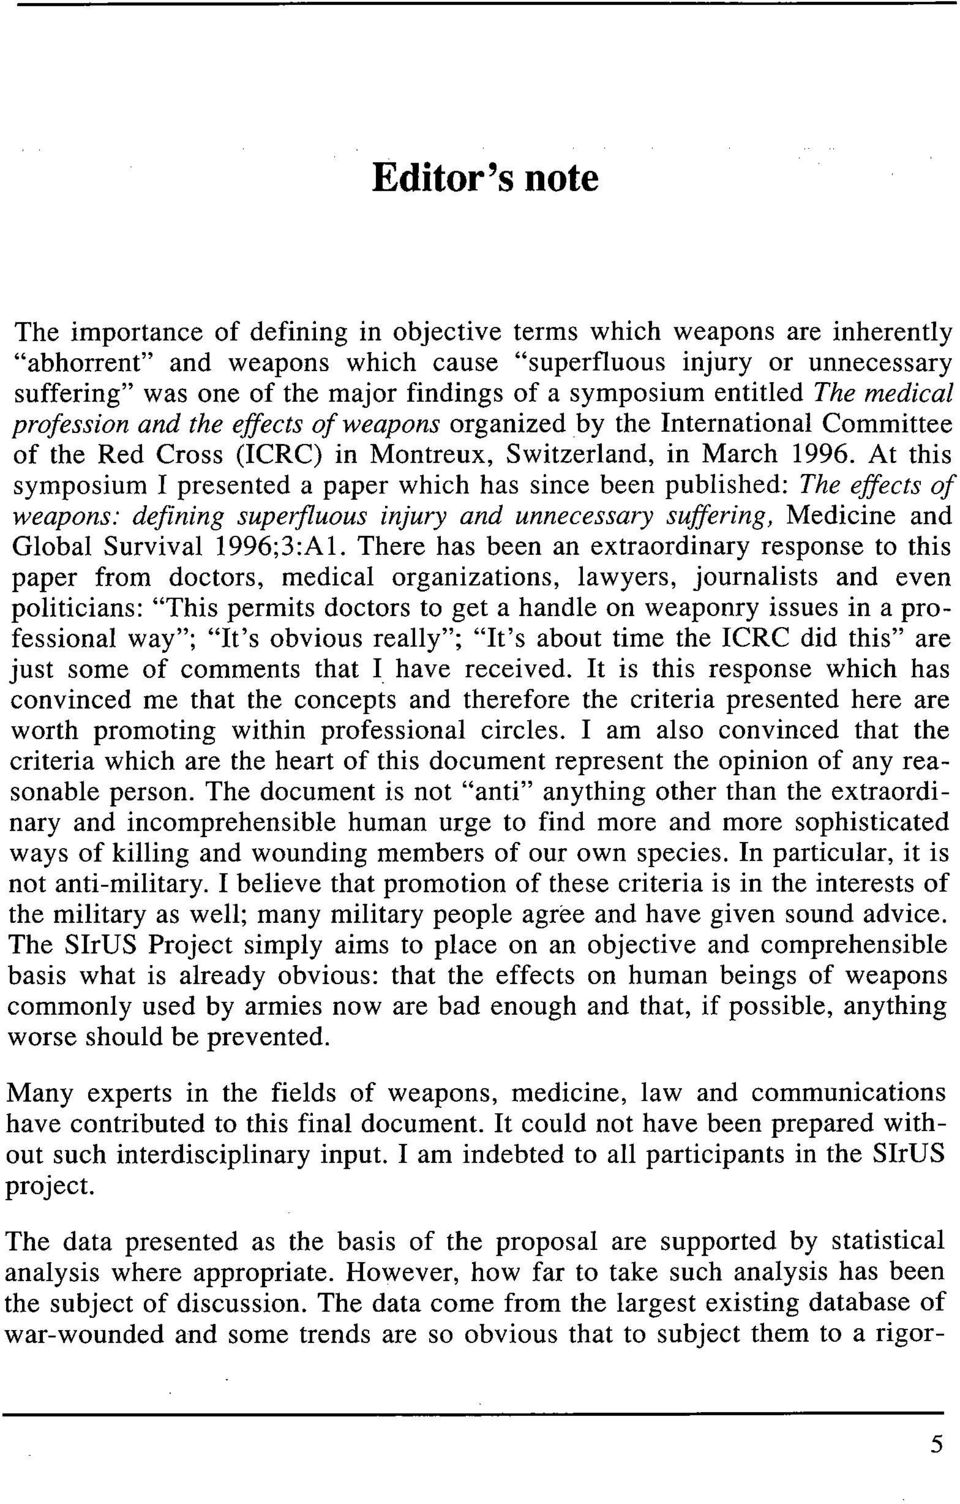 At this symposium I presented a paper which has since been published: The effects of weapons: defining superfluous injury and unnecessary suffering, Medicine and Global Survival 1996;3:Al.